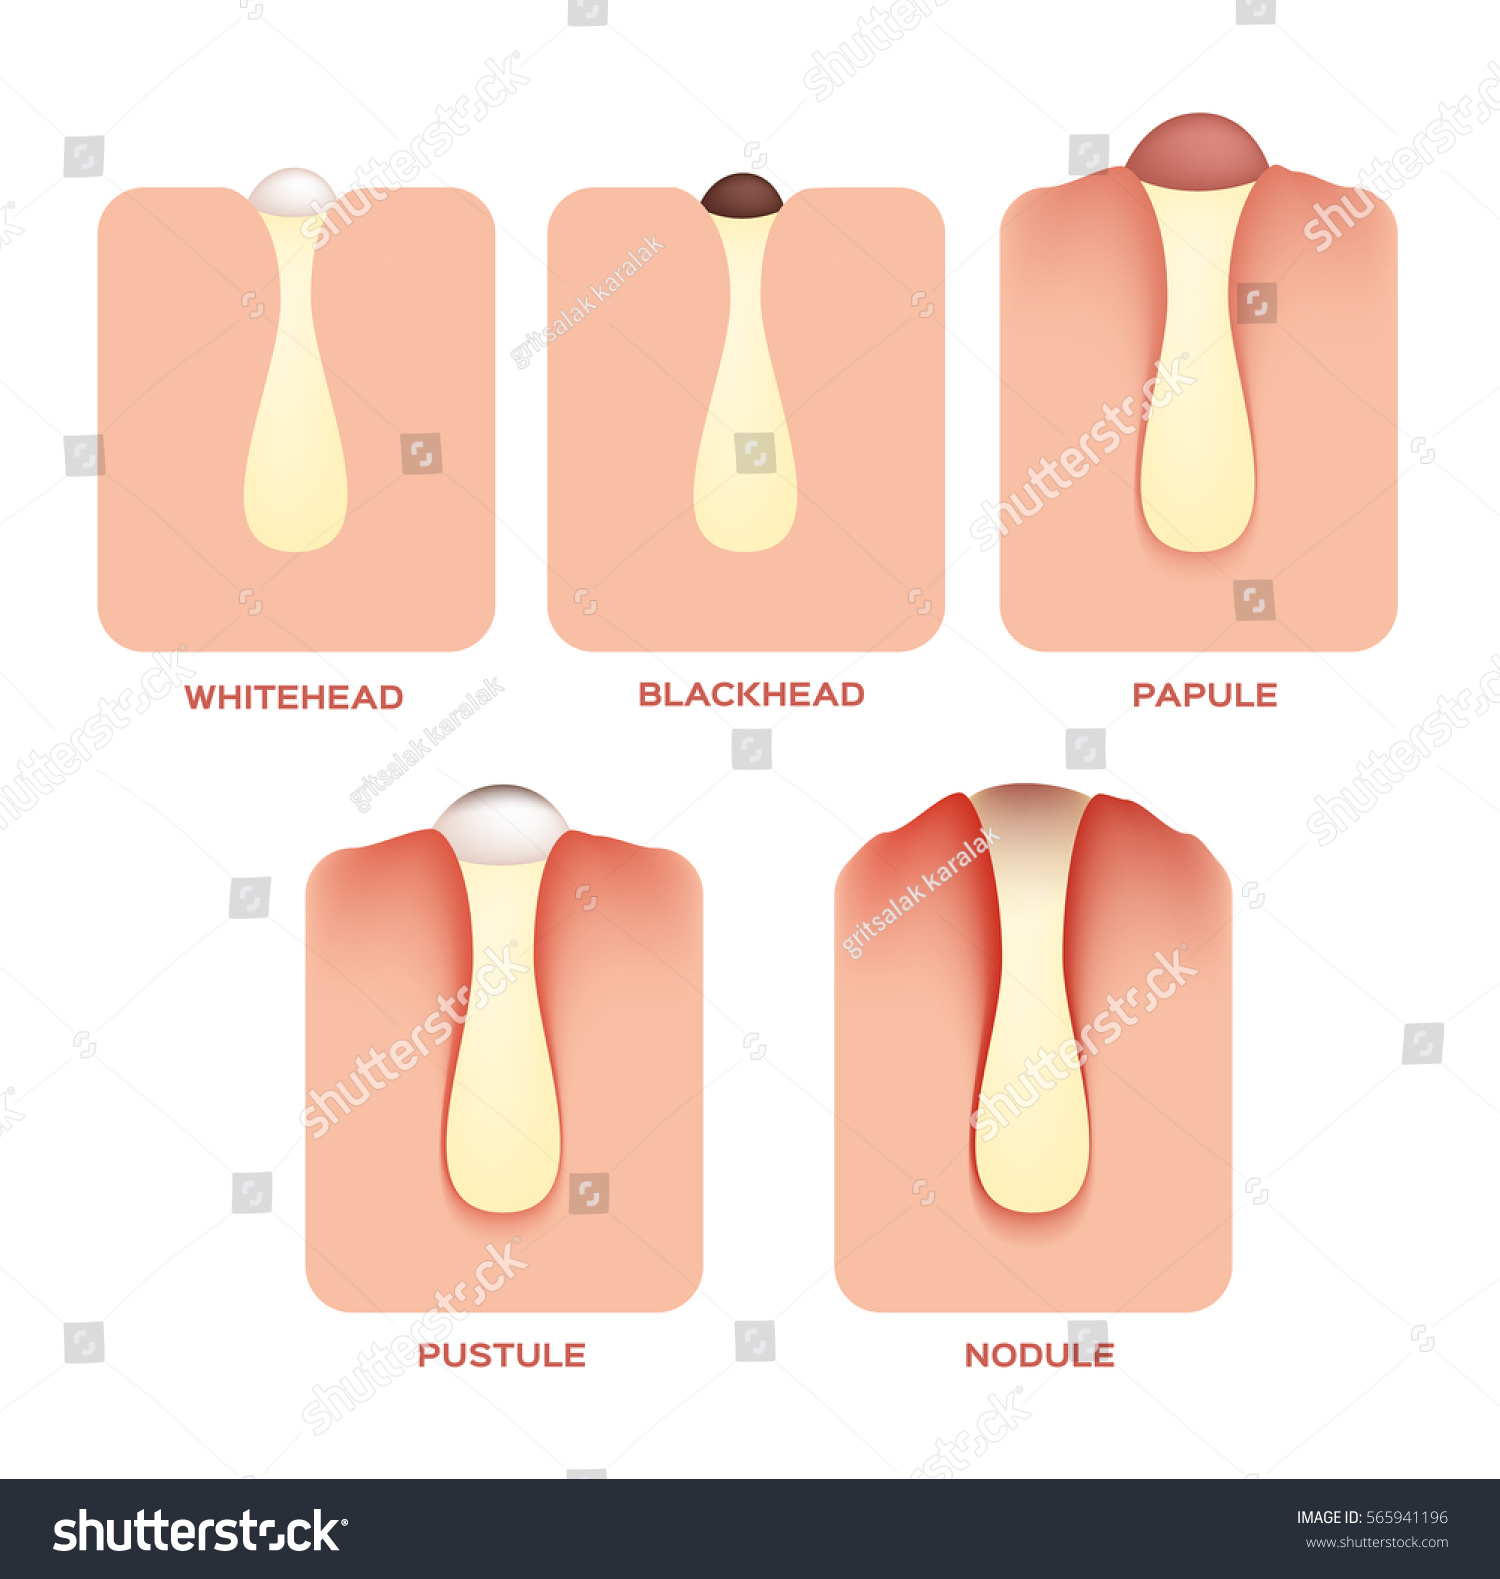 Types Acne Pimples Stages Development Vector Stock Vector (Royalty ...